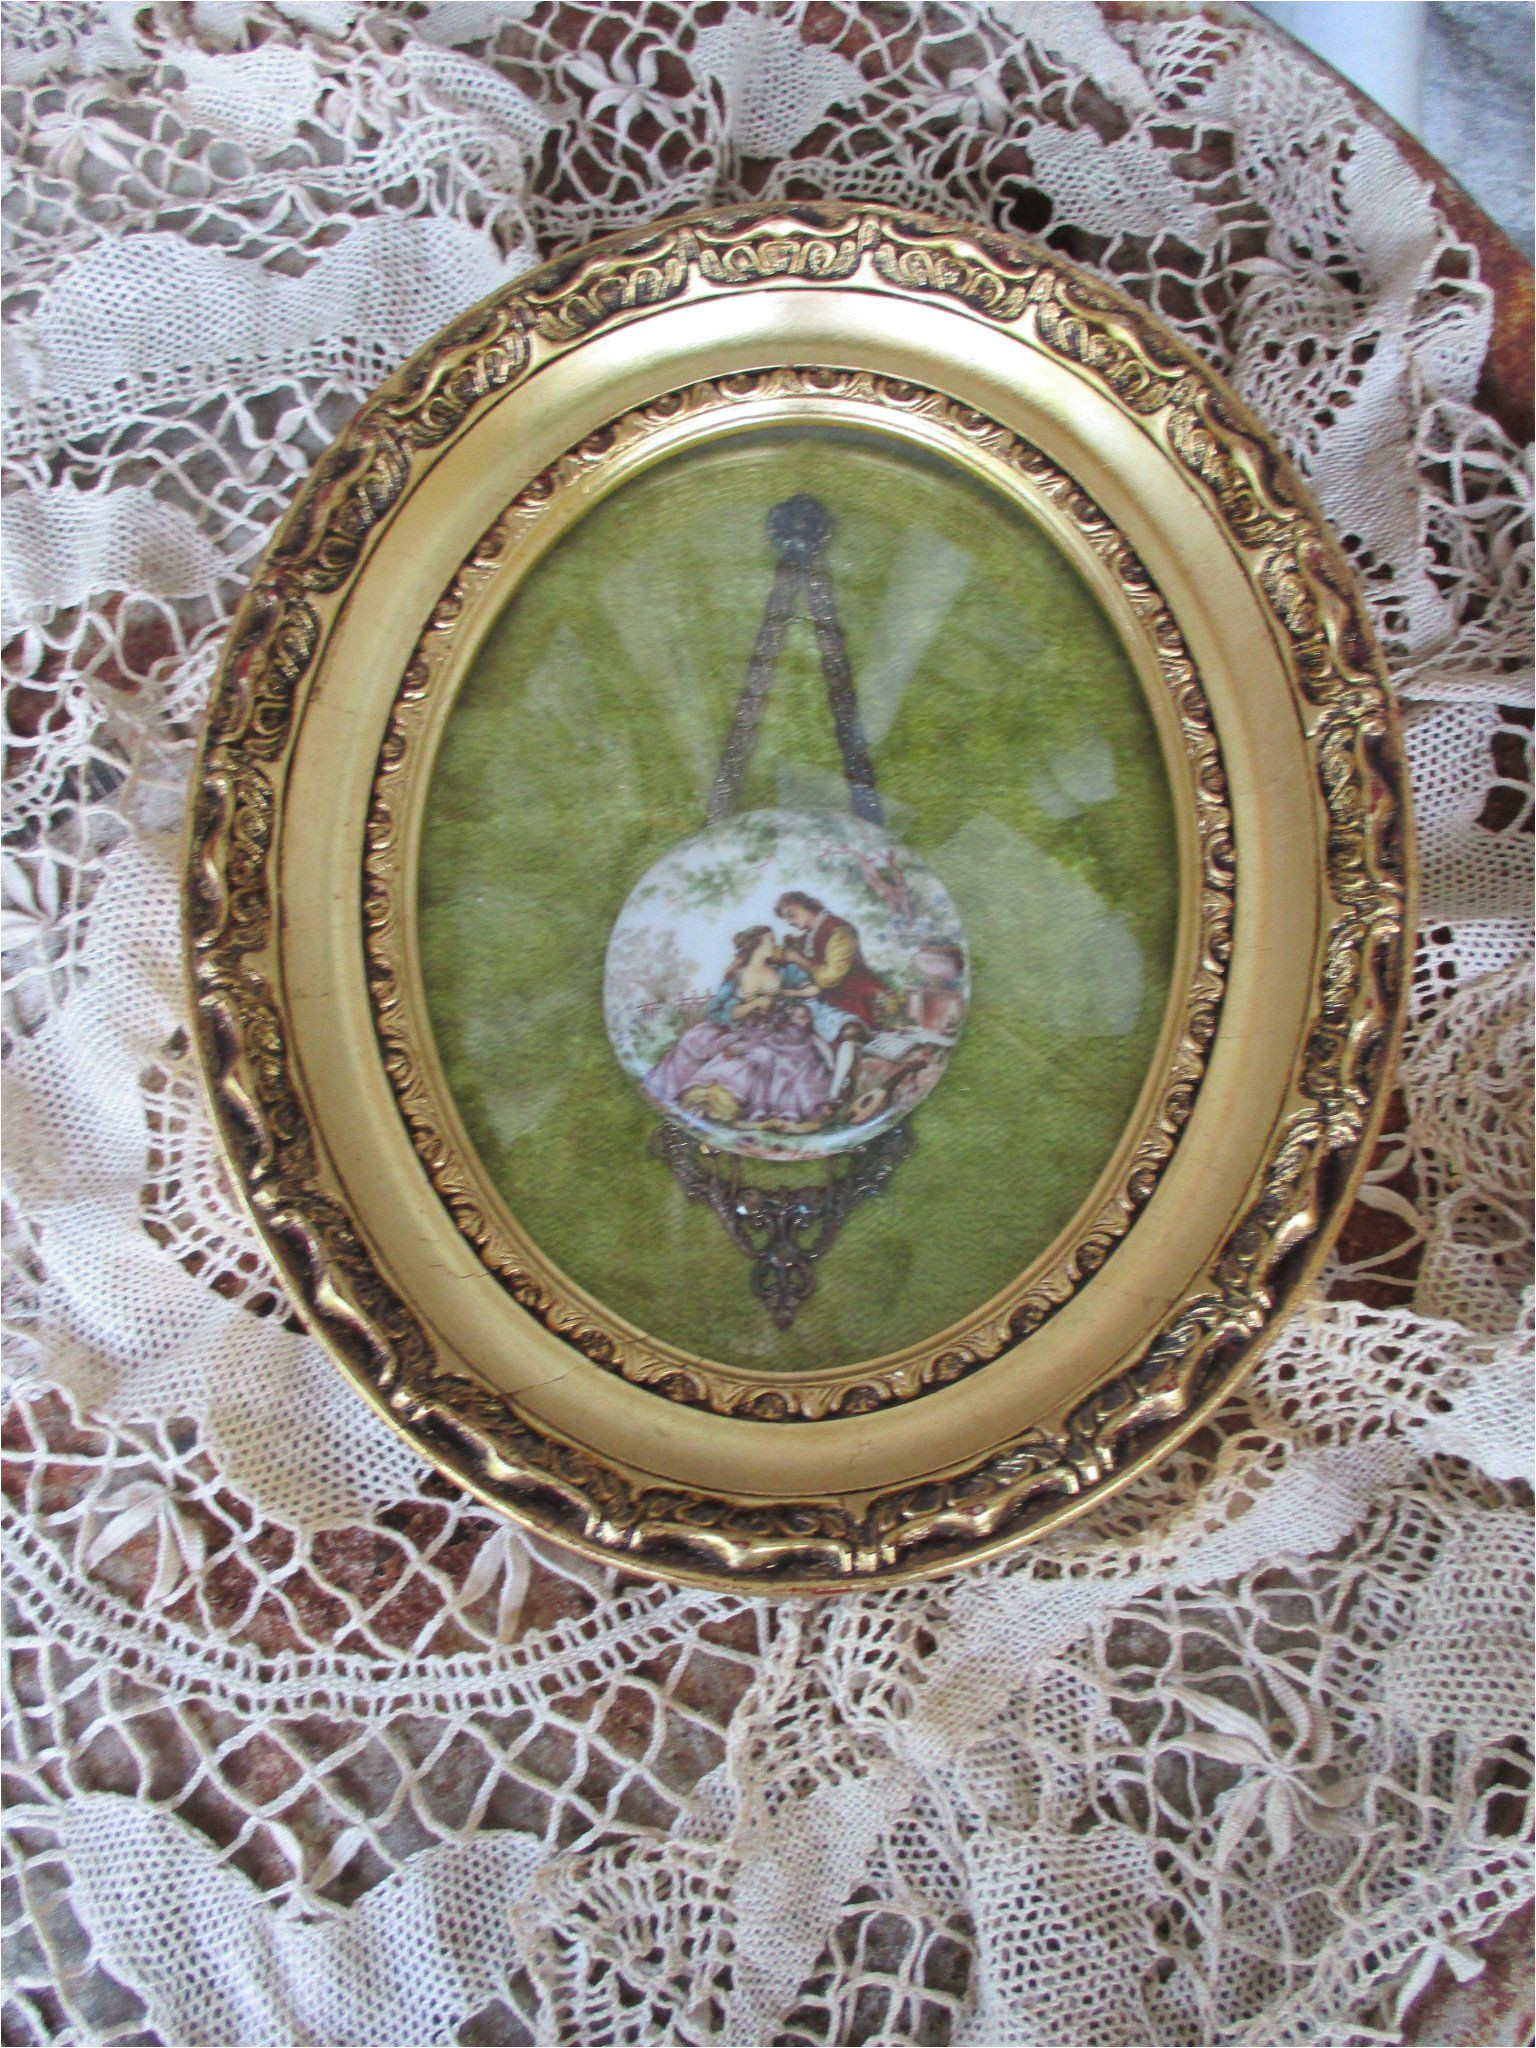 reduced vtg gold gesso framed porcelain fragonard style young lovers garden cameo button on velvet oval convex bubble glass picture frame by